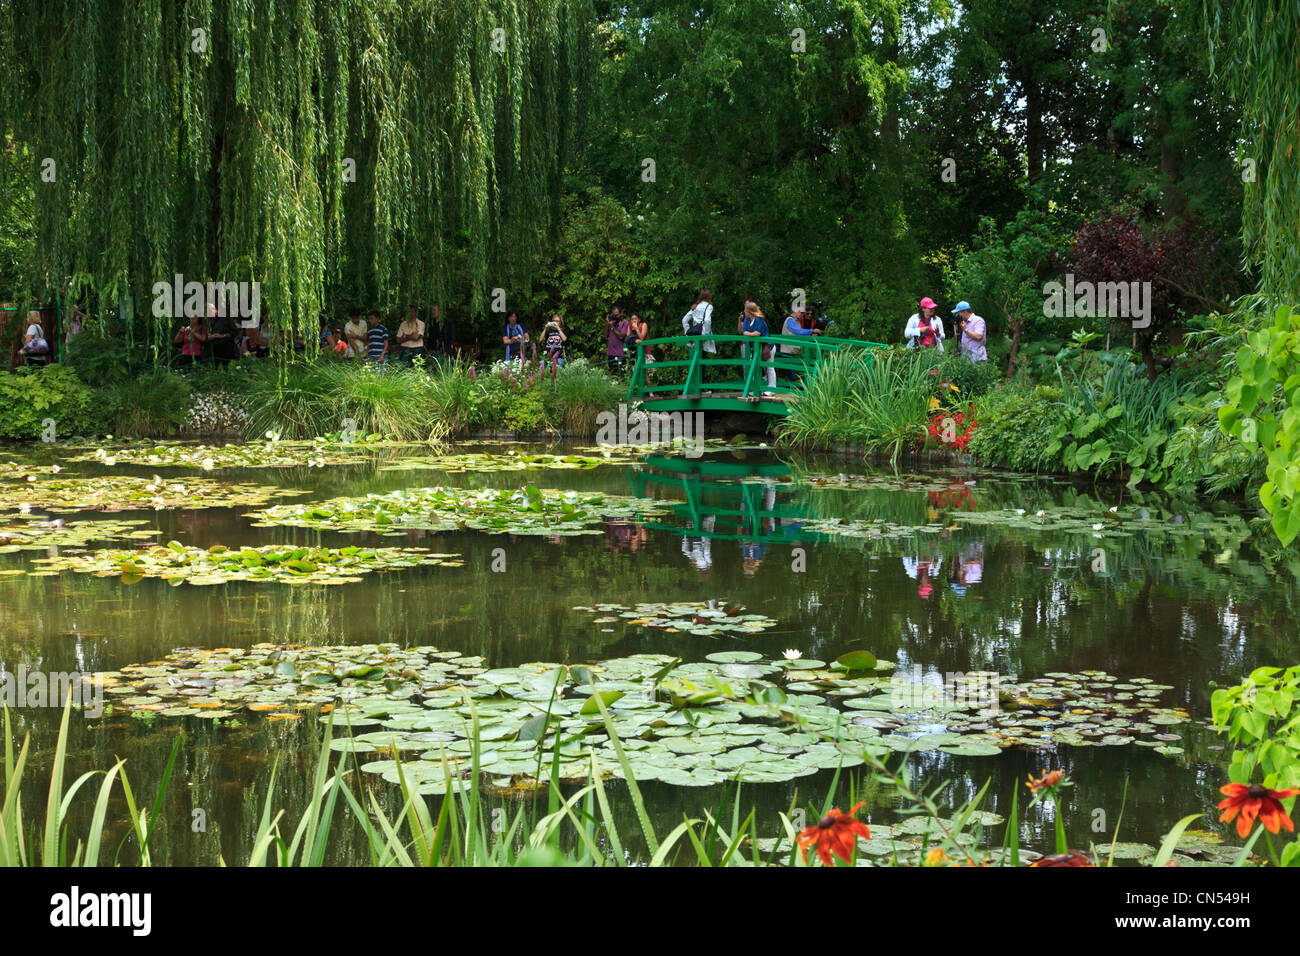 Lily Pond And Bridge, Monetu0027s Garden, Giverny, Normandy, France.   Stock